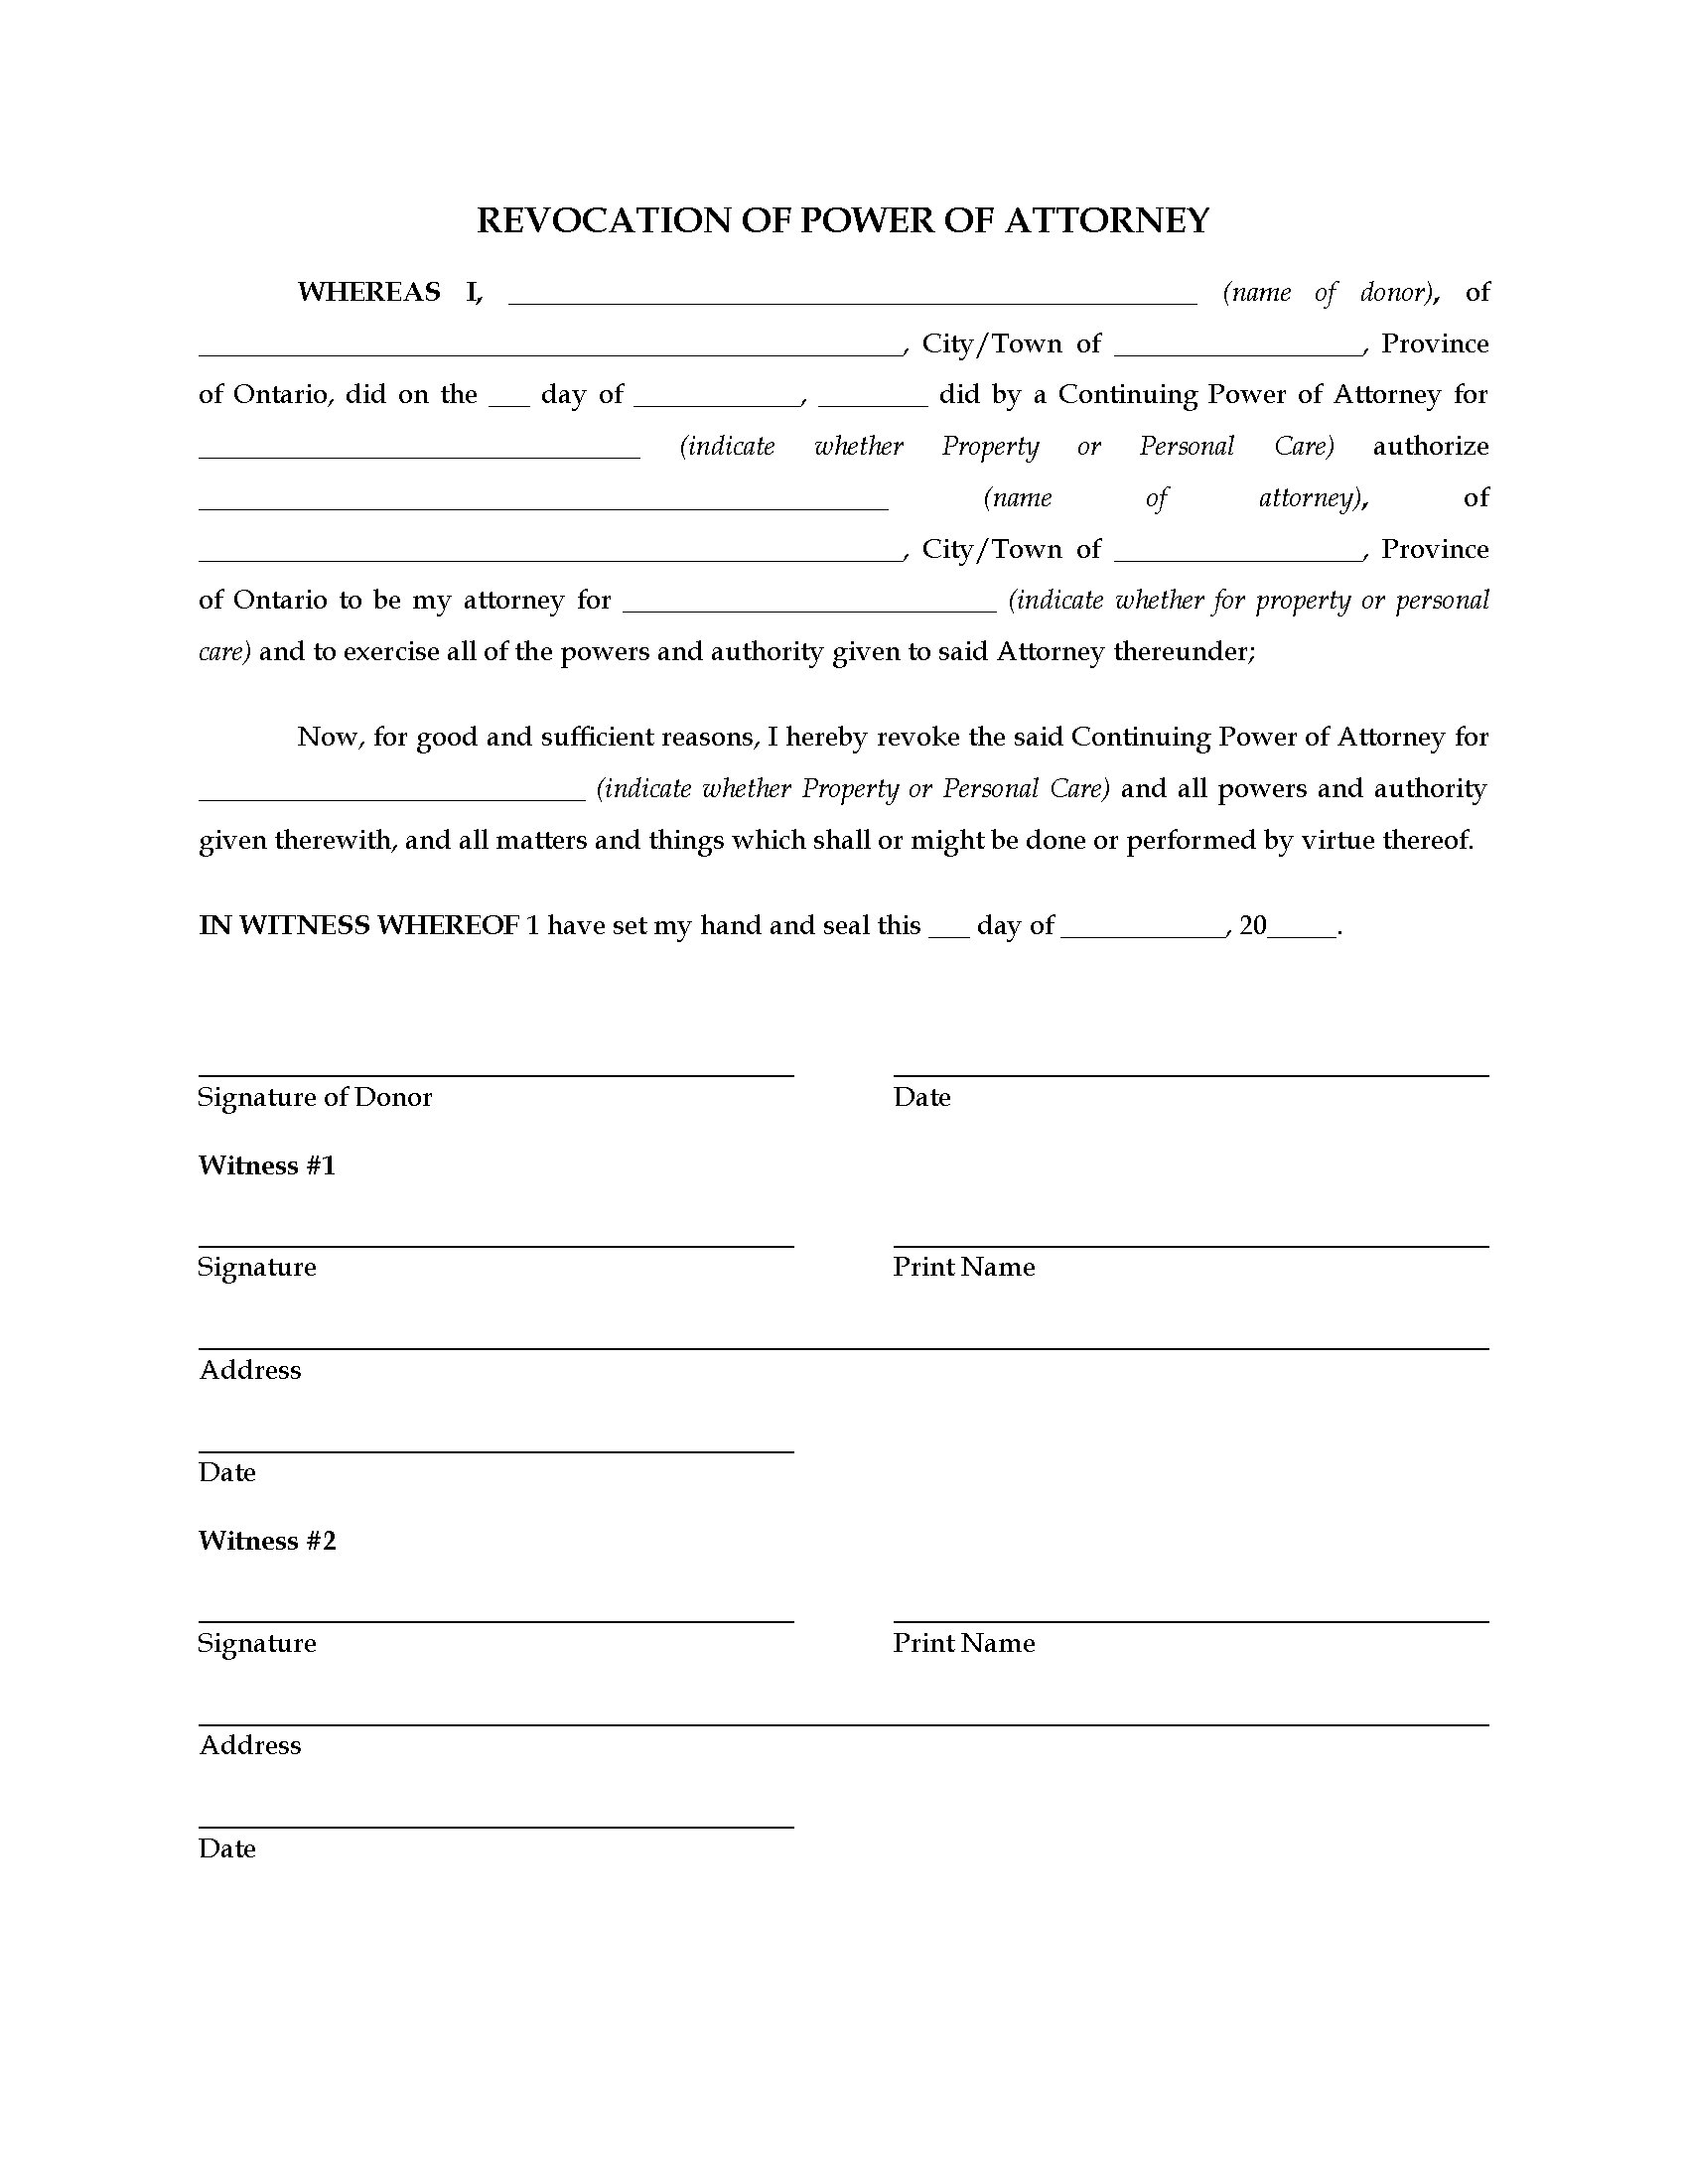 Ontario Revocation Of Power Of Attorney | Legal Forms And Business - Free Printable Revocation Of Power Of Attorney Form